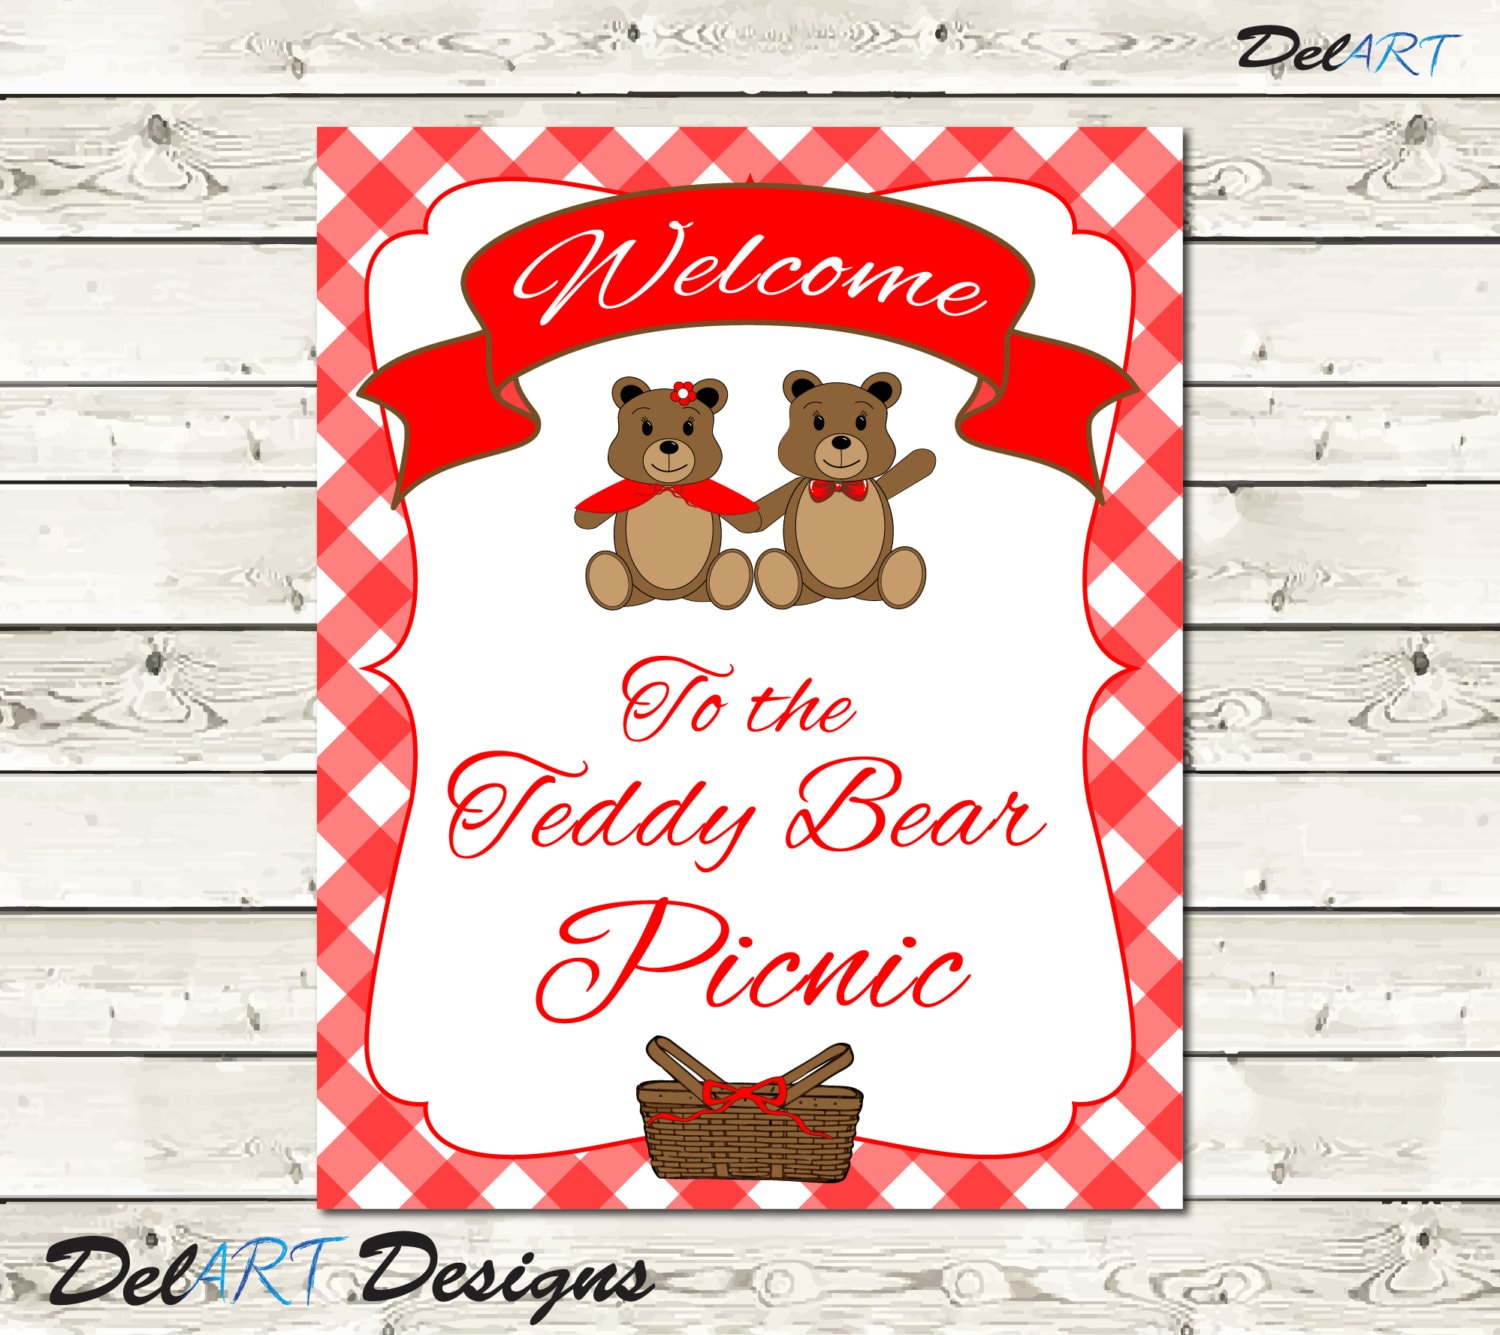 Teddy Bear Picnic Matching Welcome and Happy Birthday Signs   Etsy